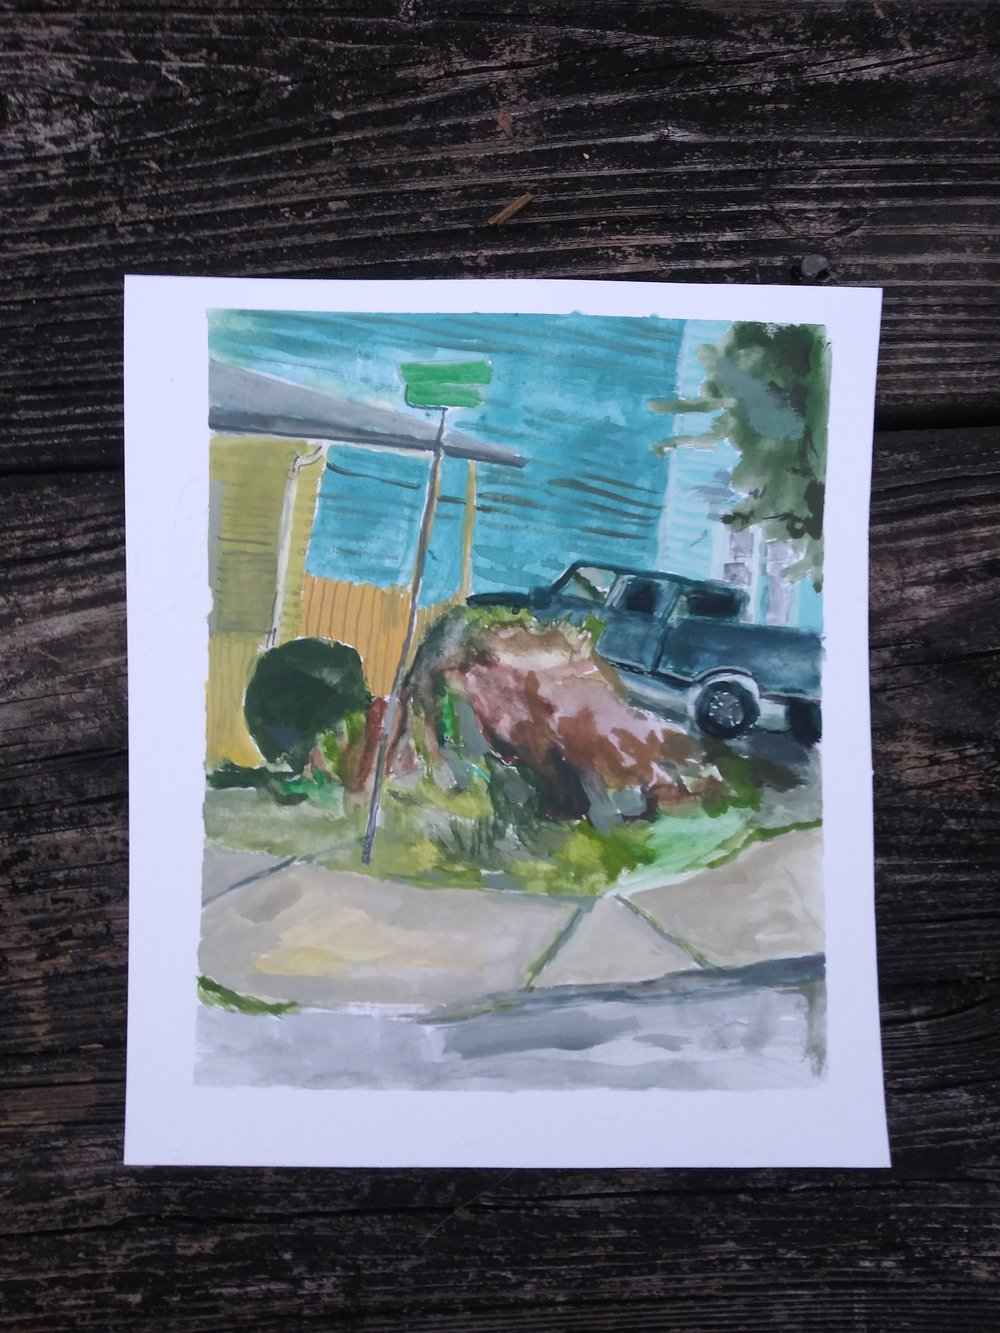 "This is a mound seen in Athens Georgia in the spring of 2017. Gouache on paper, 5""x7"", 2018"